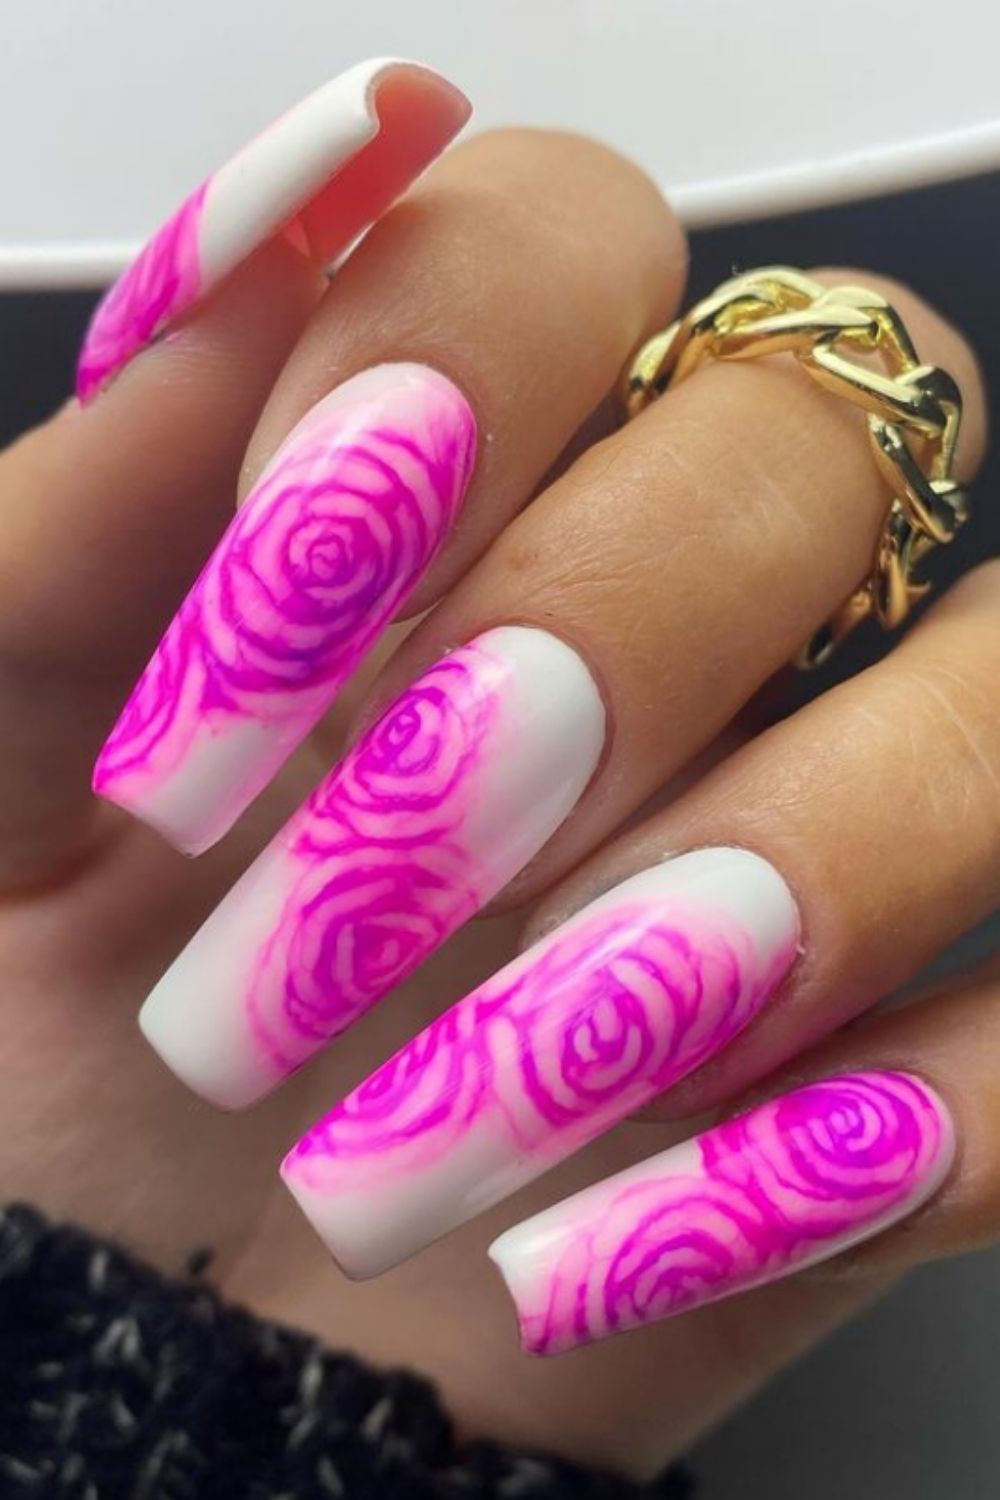 Pink ombre nails   the Millennial Version of a French Manicure